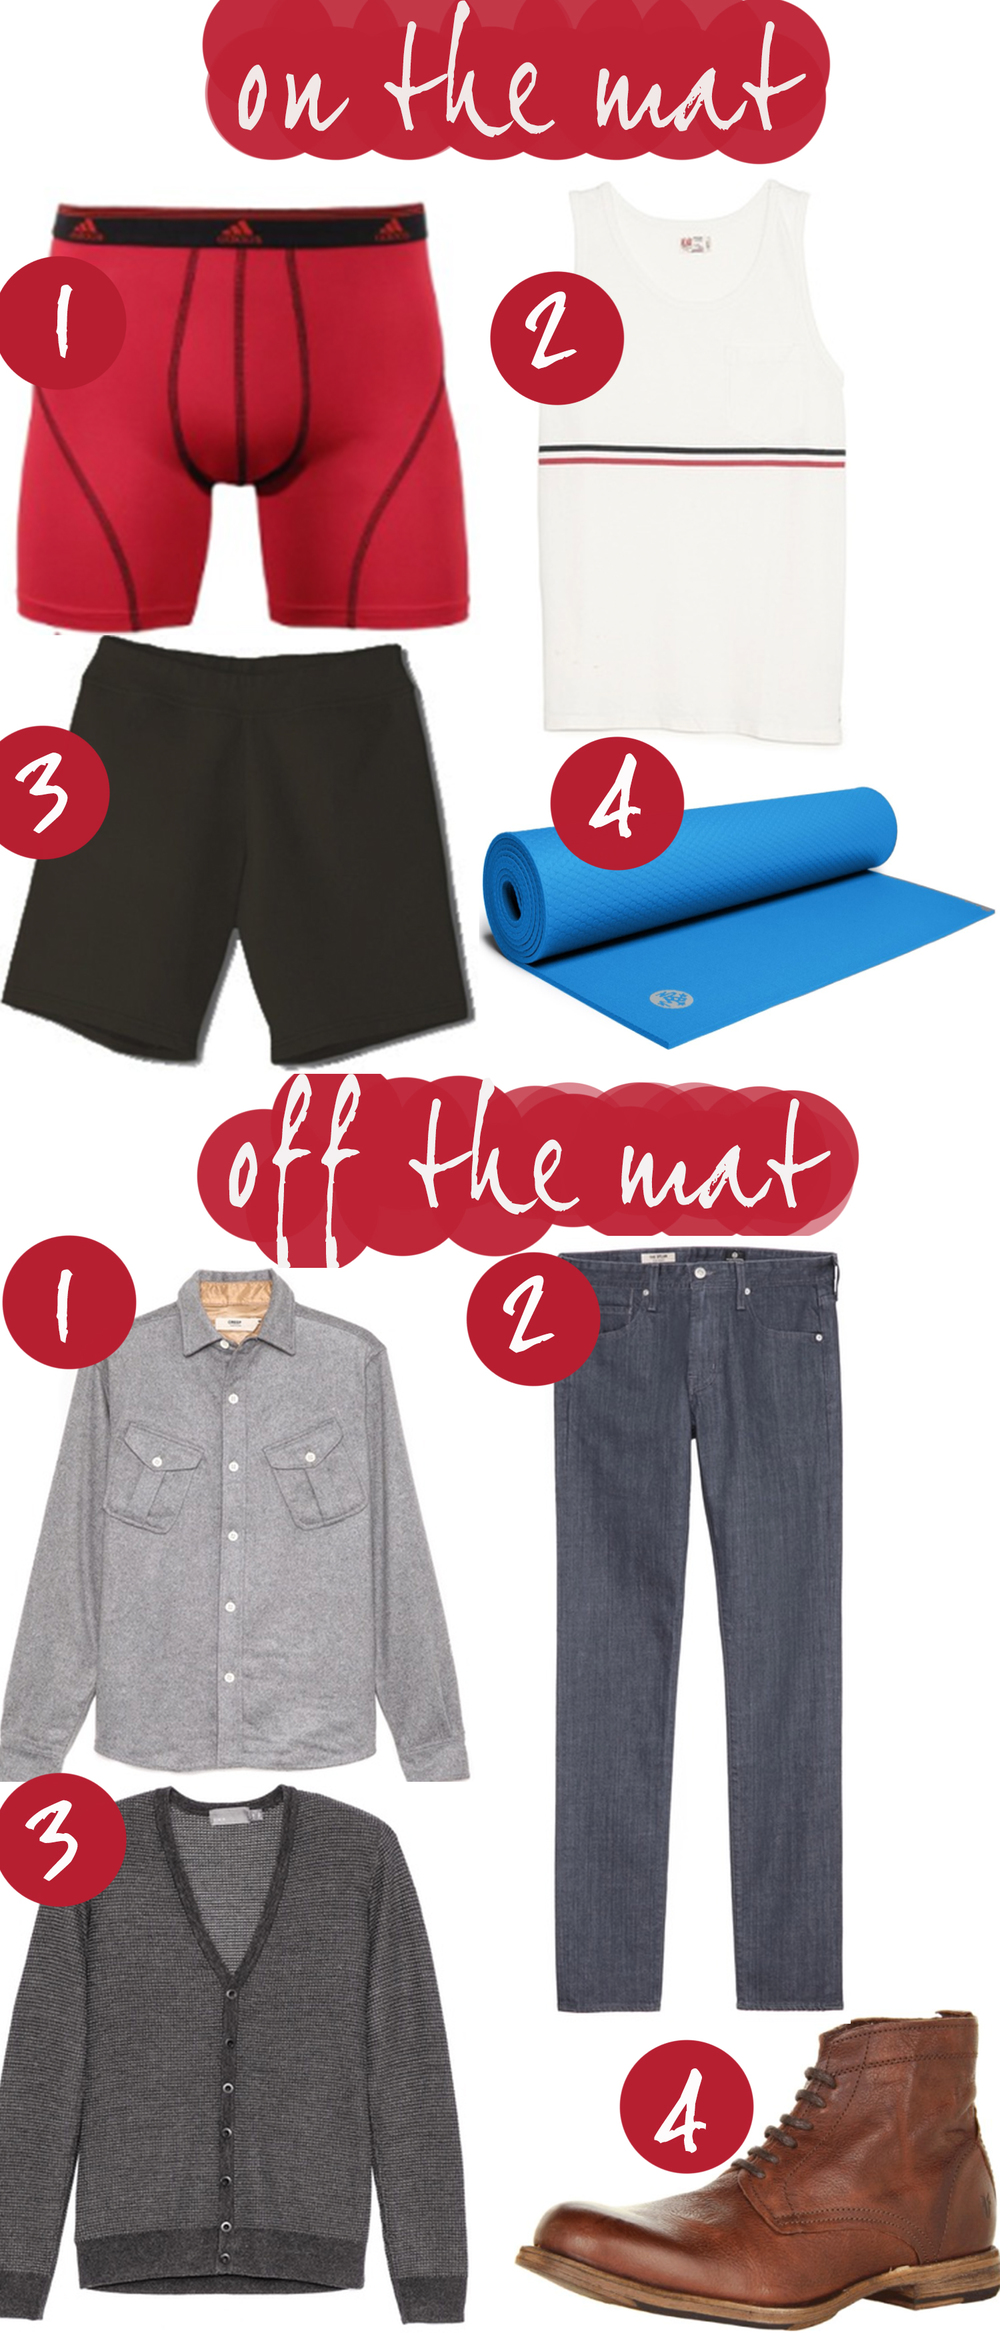 Pin it! Yoga clothes for men, date night clothes for men.